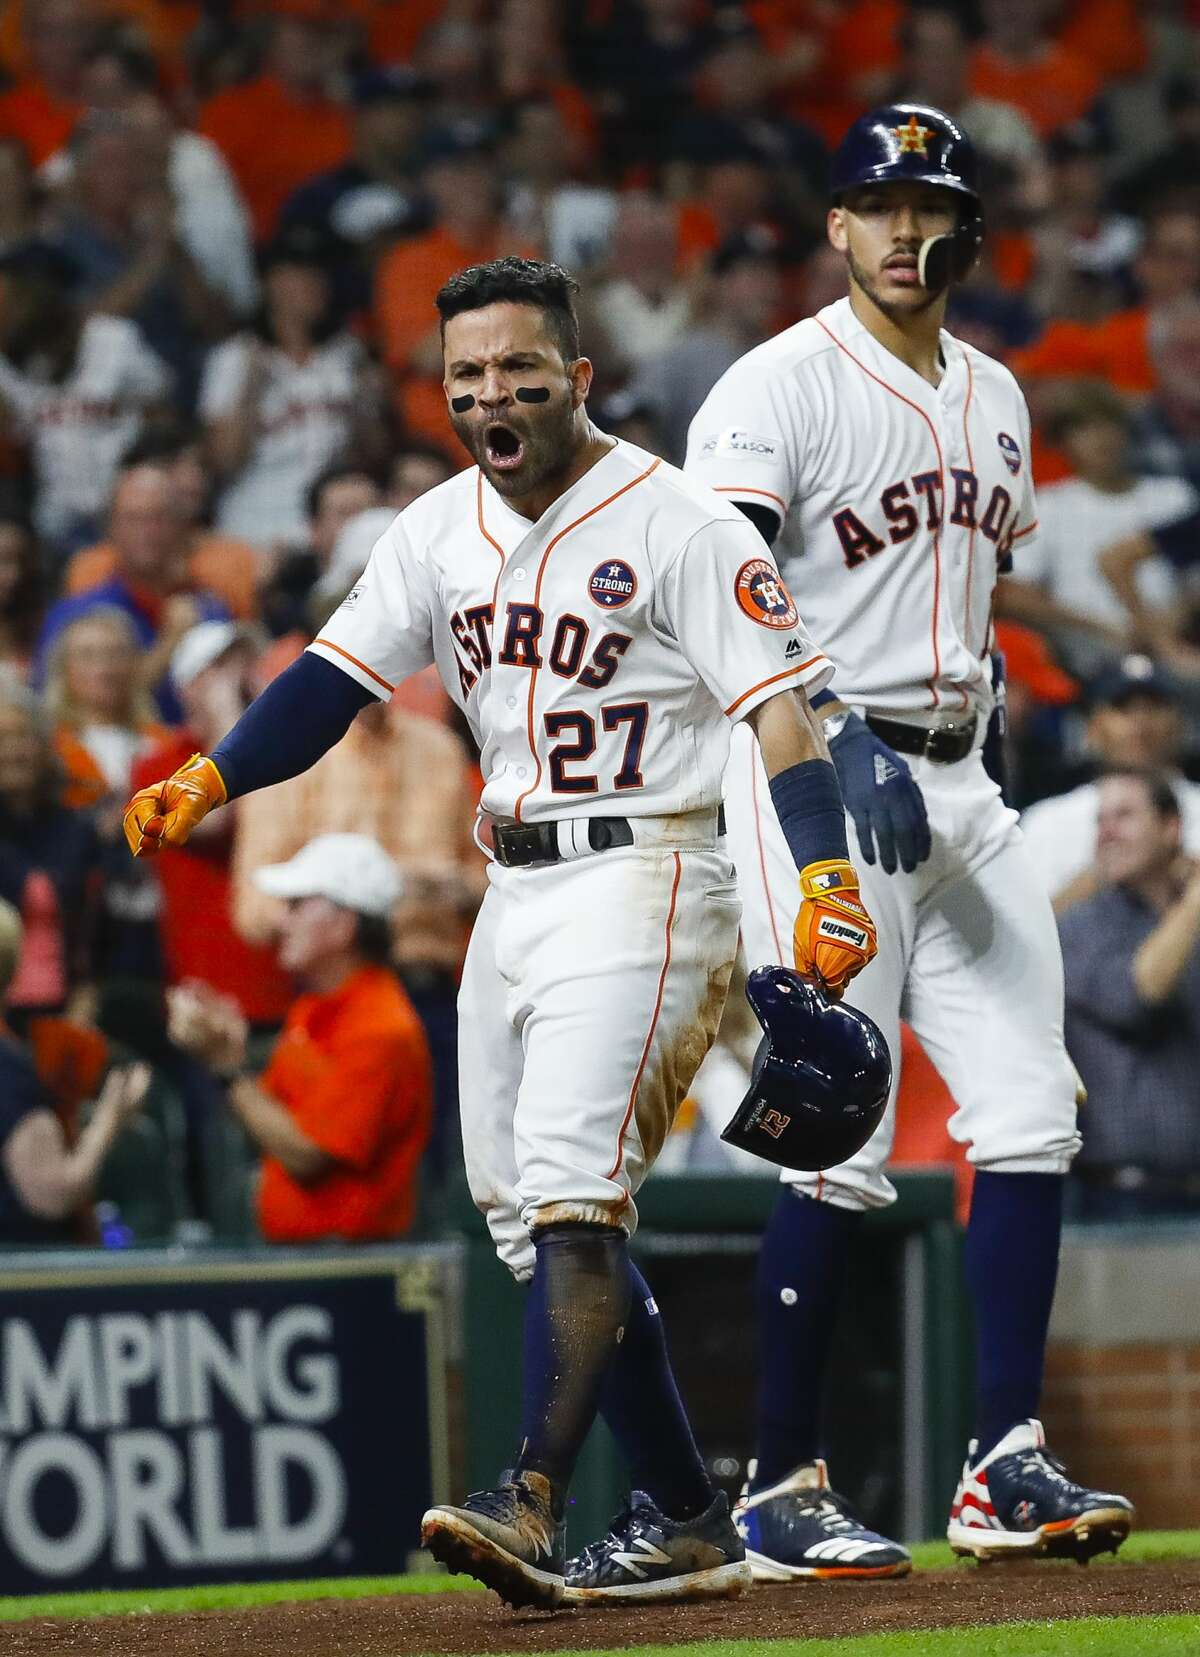 Houston Astros second baseman Jose Altuve (27) and shortstop Carlos Correa (1) celebrate Altuve's solo home run in the fifth inning of Game 7 of the ALCS at Minute Maid Park, Satuday, Oct. 21, 2017, in Houston.